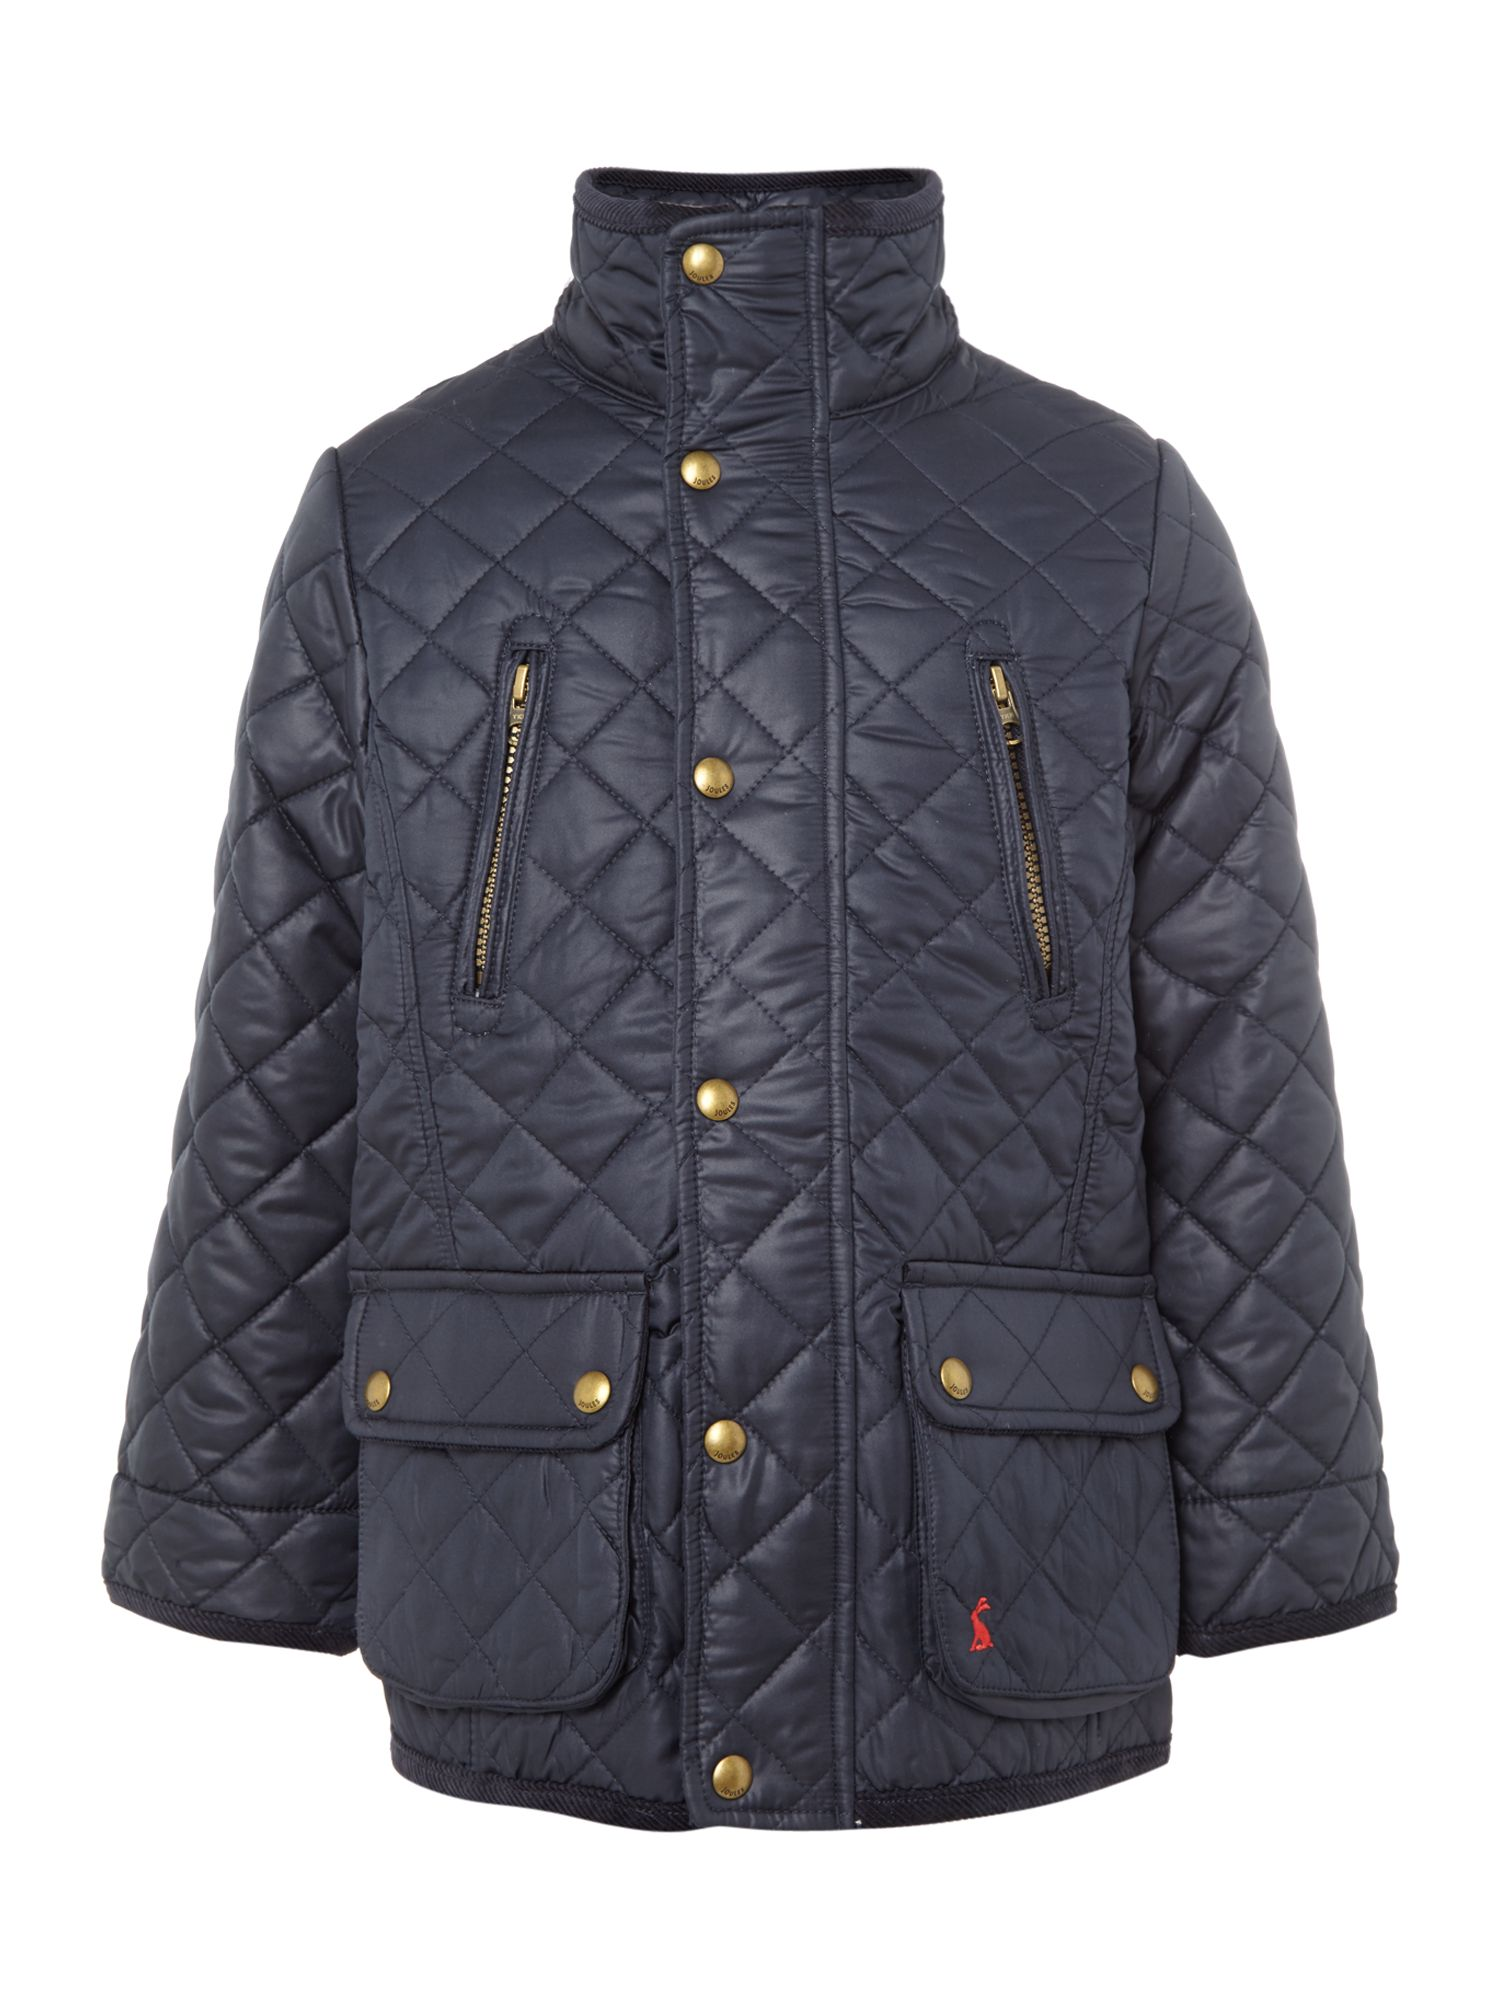 Boy's quilted utility jacket